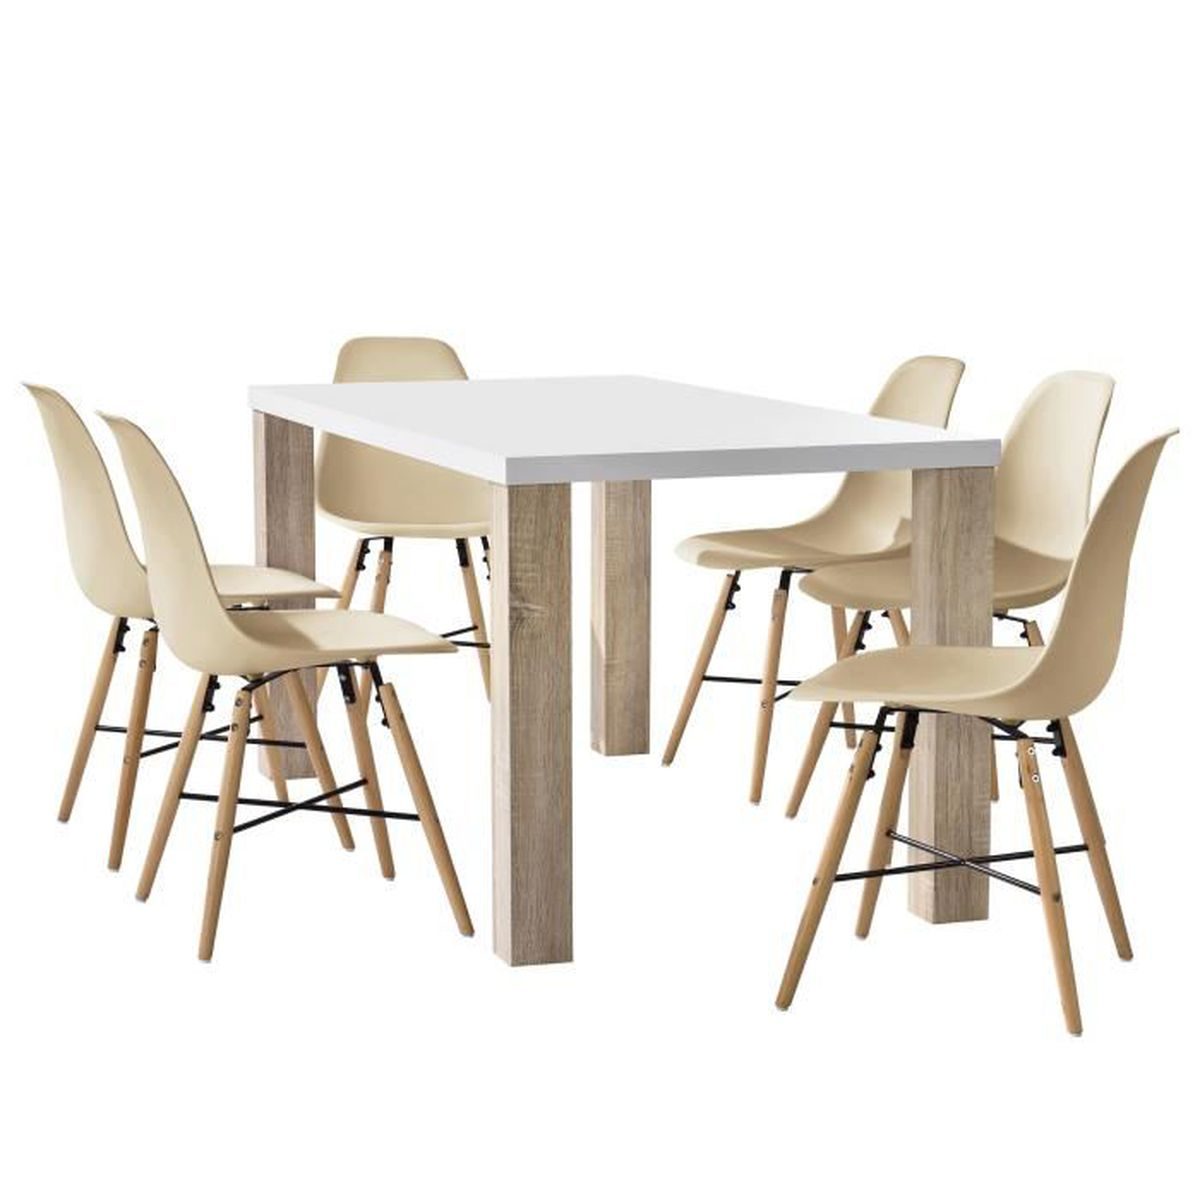 table manger ch ne blanc avec 6 chaises beige160x85cm salle manger cuisine achat. Black Bedroom Furniture Sets. Home Design Ideas